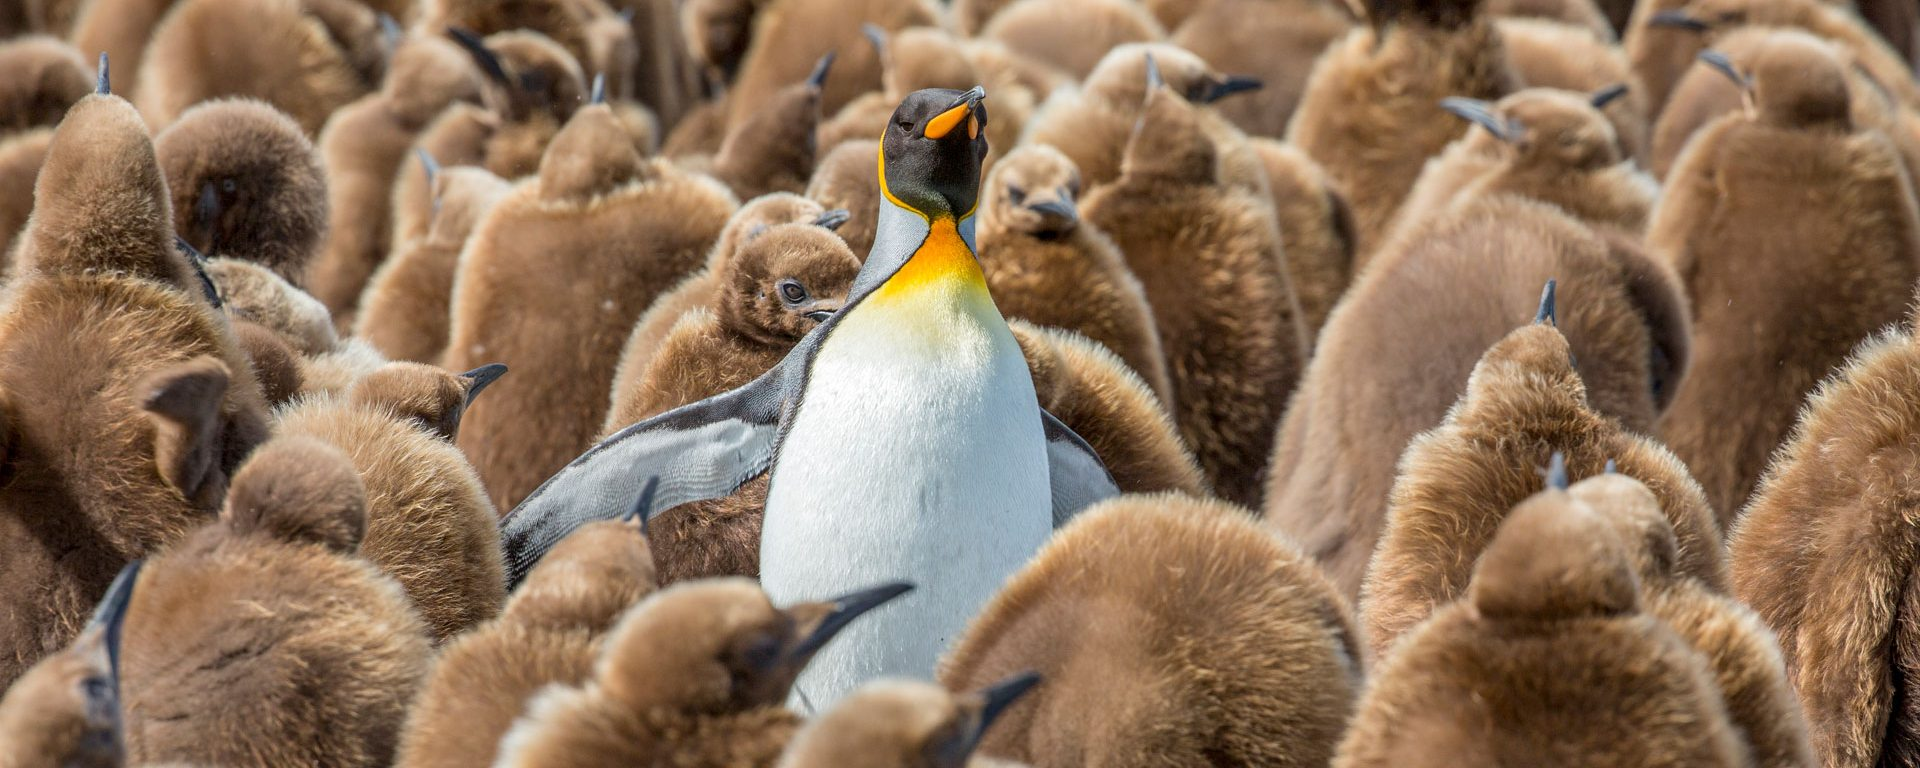 King penguin rookery at Gold Harbor, South Georgia Islands, Antarctica